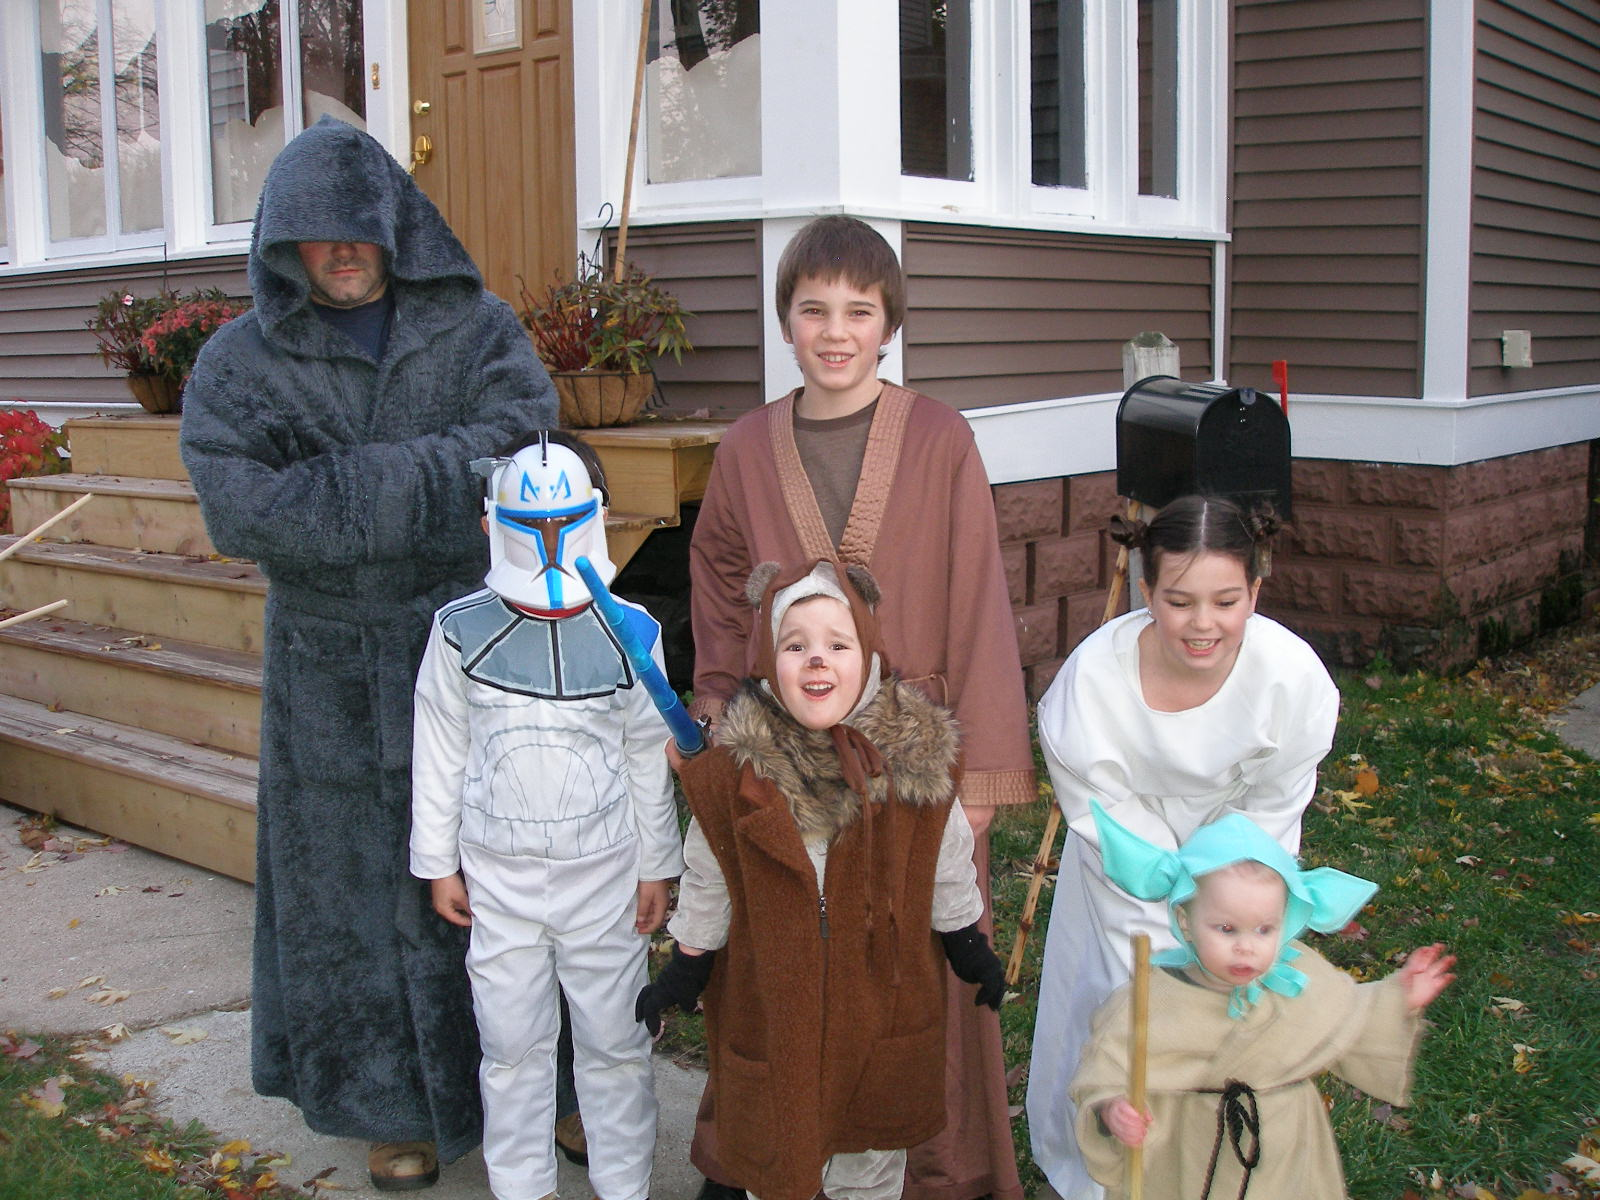 Super savings diy star wars costumes baby yoda princess leia super savings diy star wars costumes baby yoda princess leia mace windu and an ewok solutioingenieria Gallery